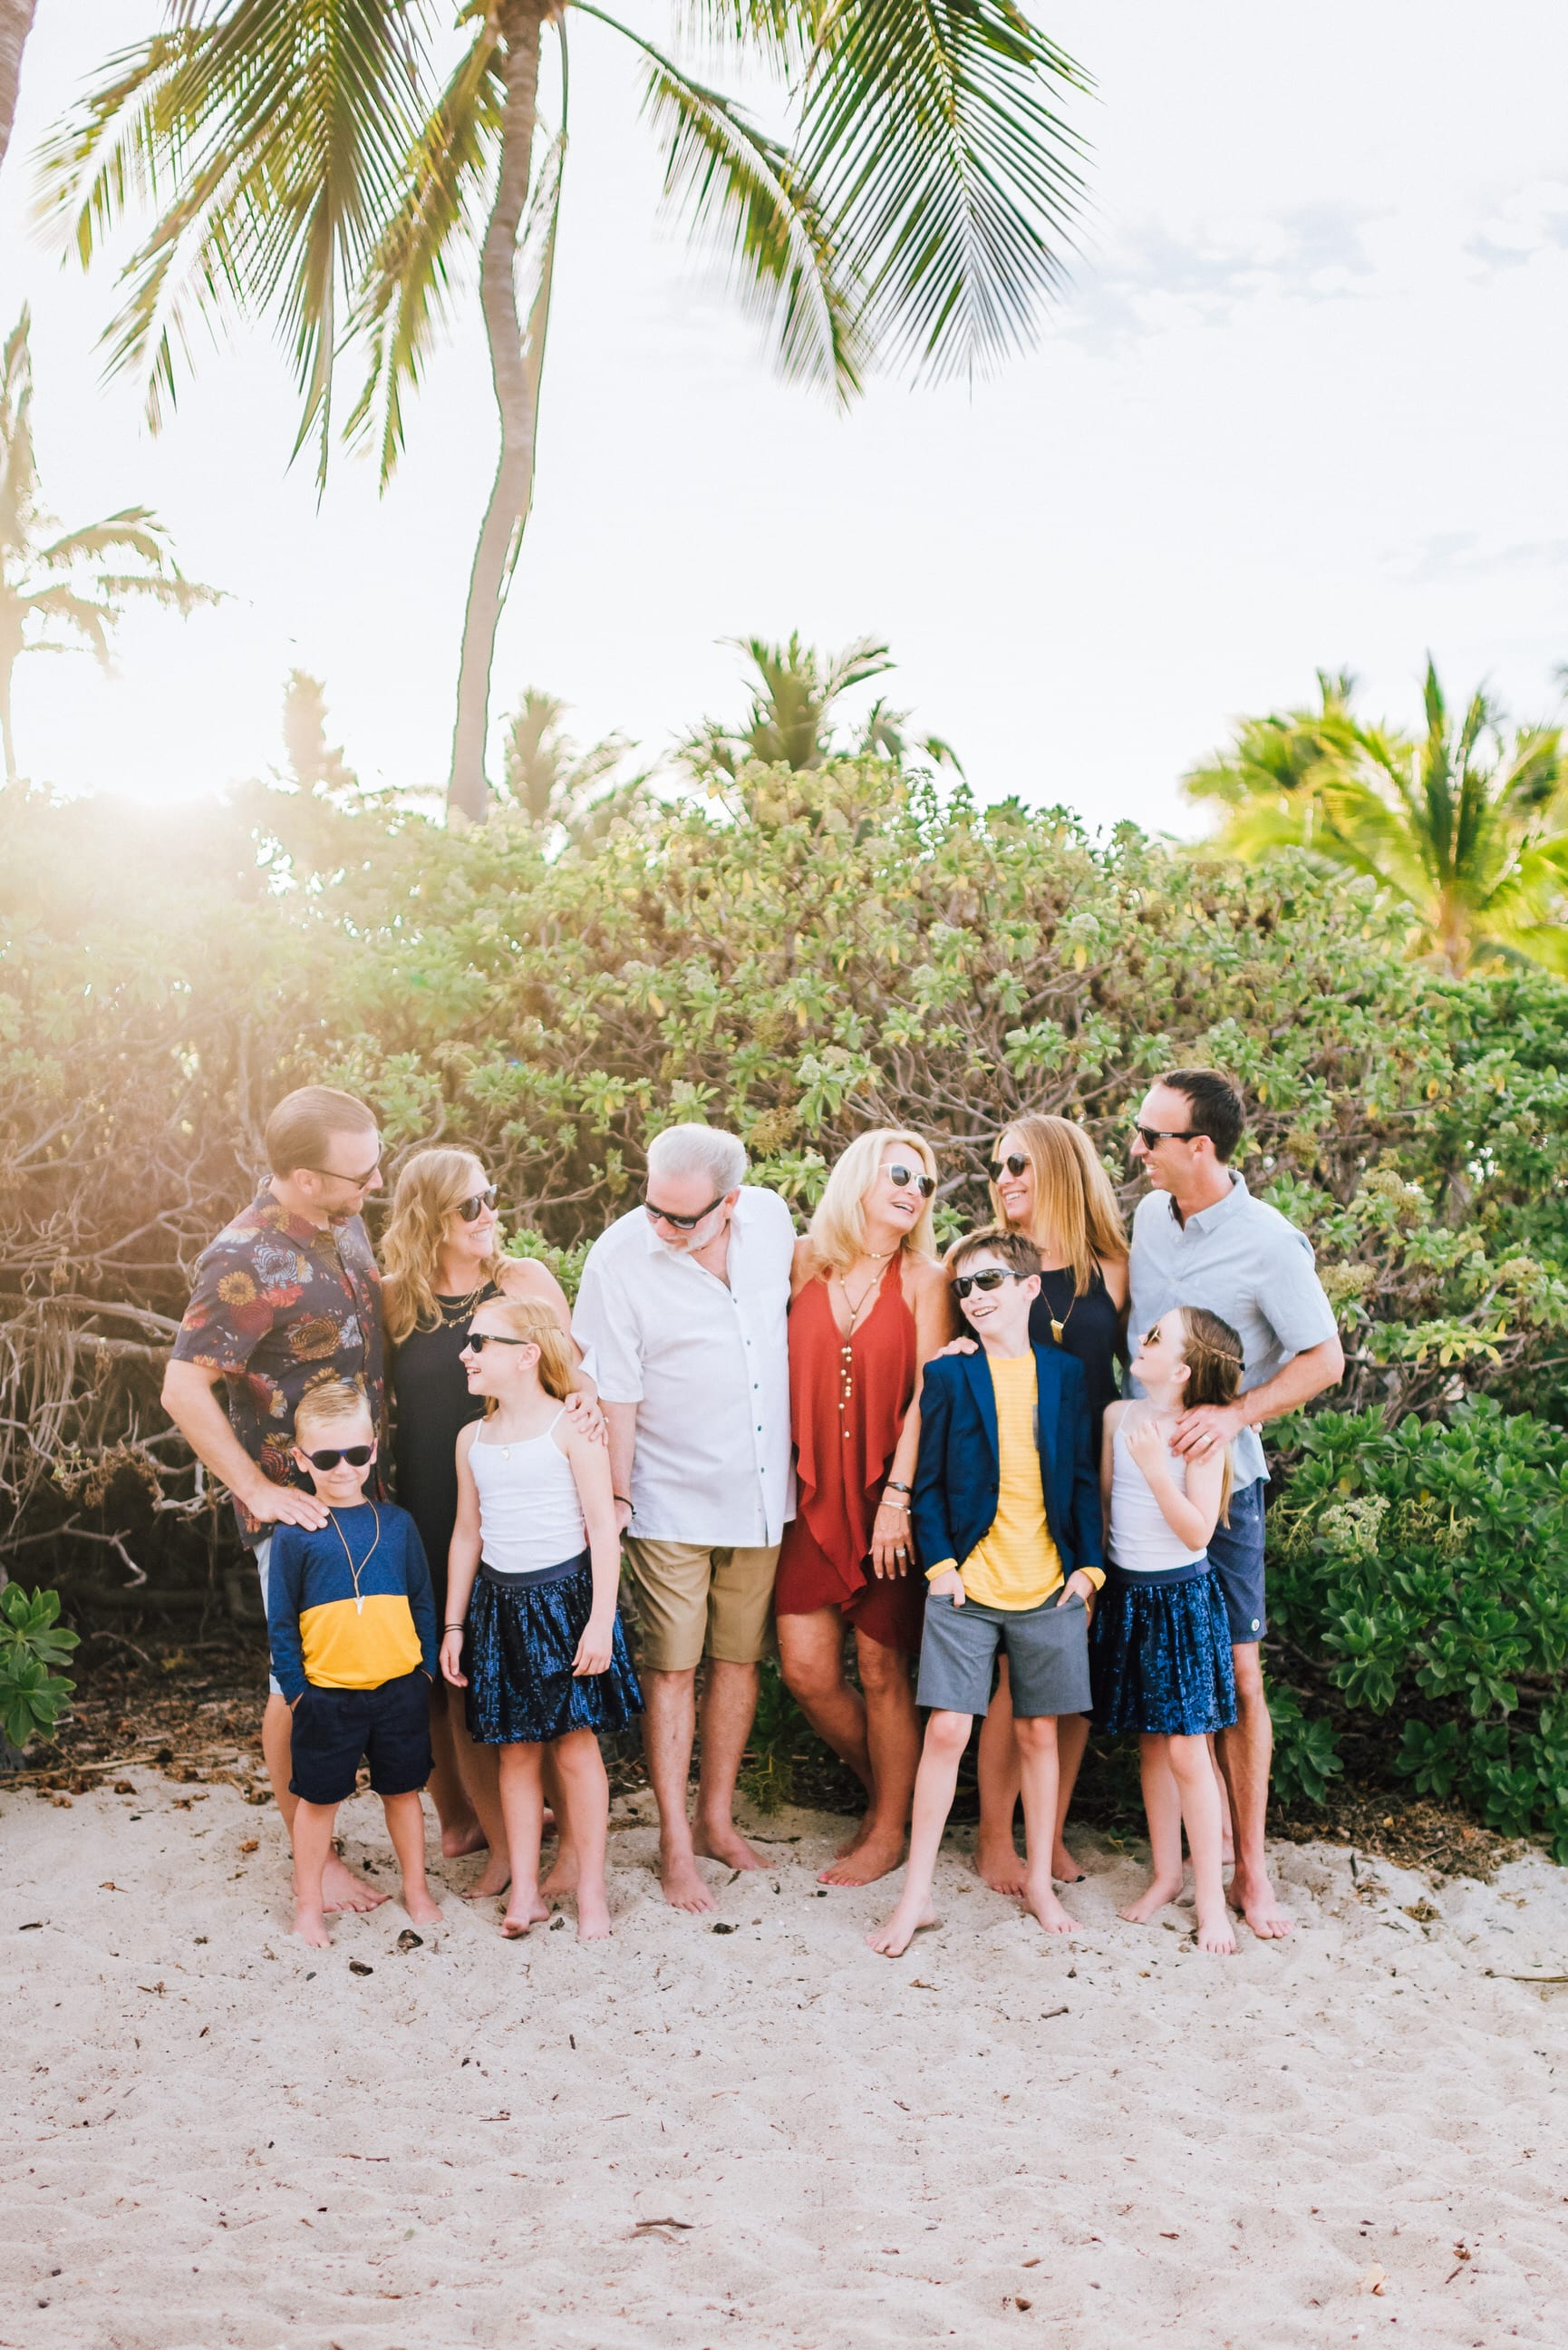 Kona-Photographer-Hawaii-Family-Photos-1.jpg